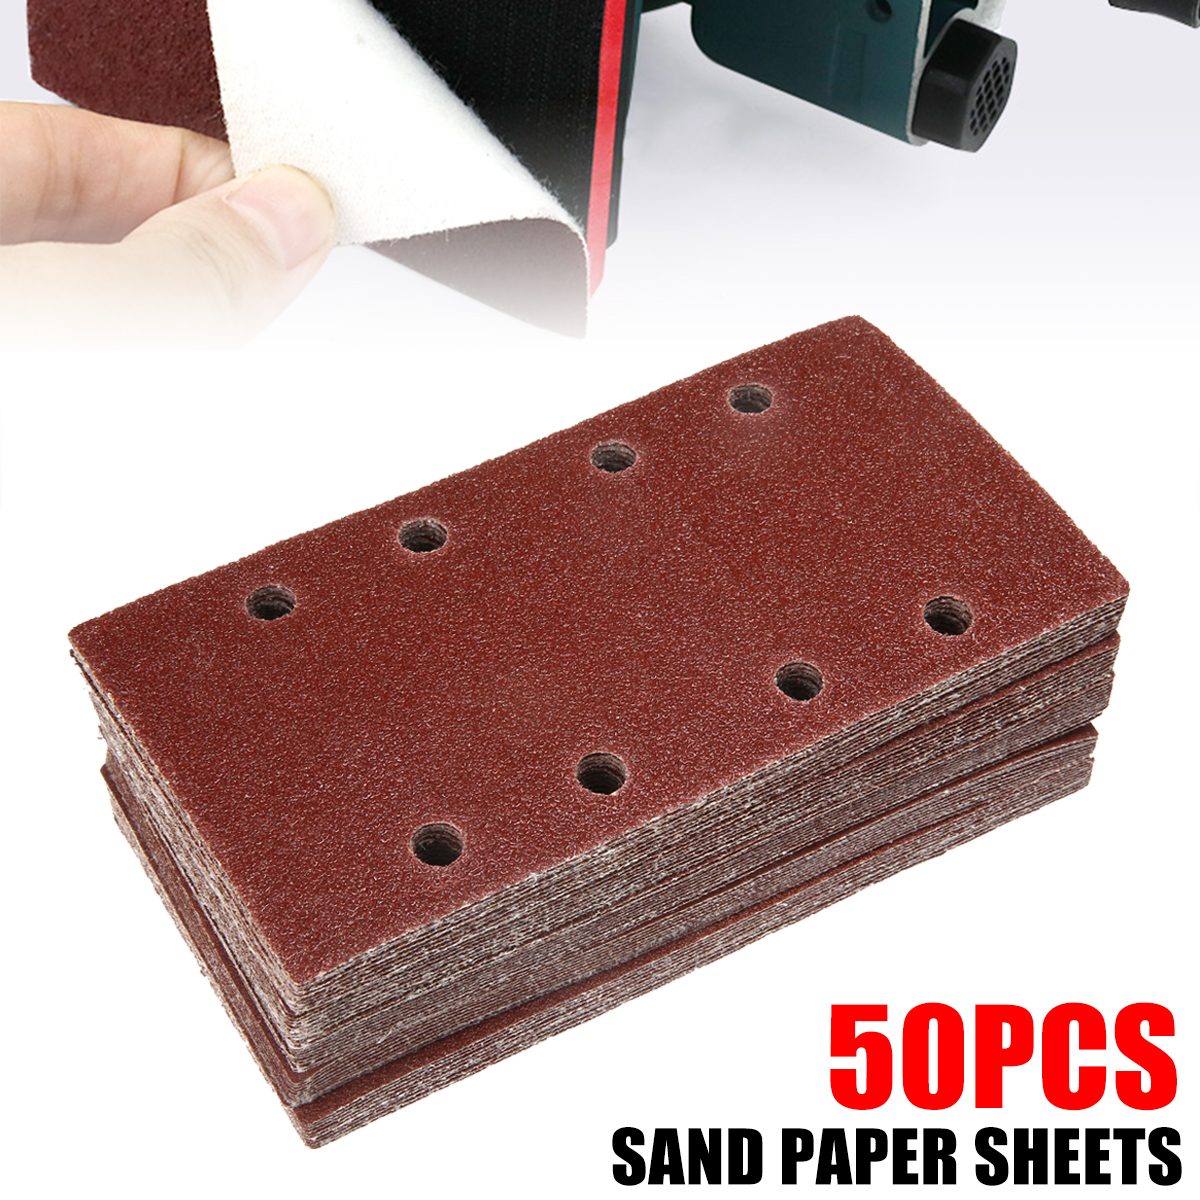 50pcs/lot 40-120 Grit 8 Holes Rectangle Sanding Paper Sheets Brown Sandpaper Grit For Swing Grinder Polishing Tools 185*93mm